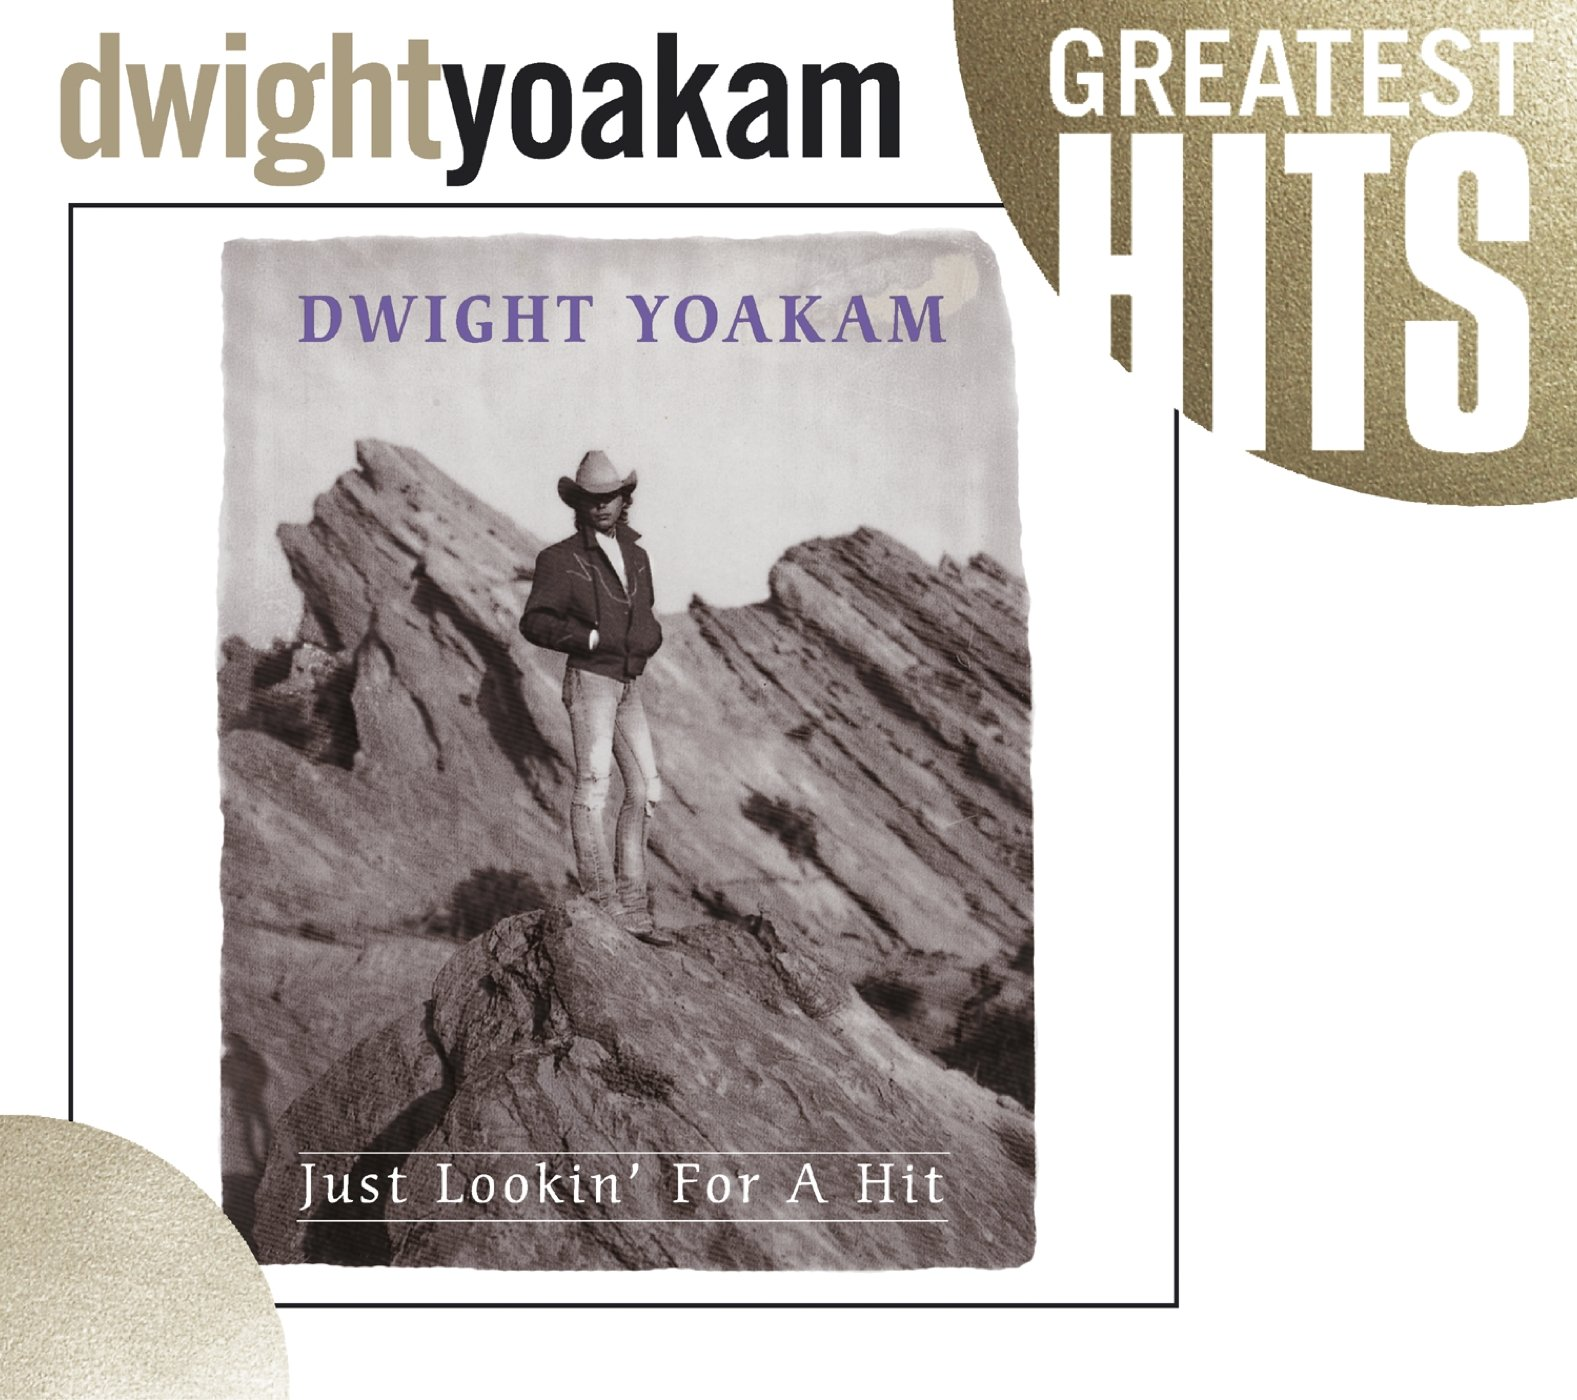 Dwight Yoakam - Just Lookin For A Hit (1989) [FLAC] Download